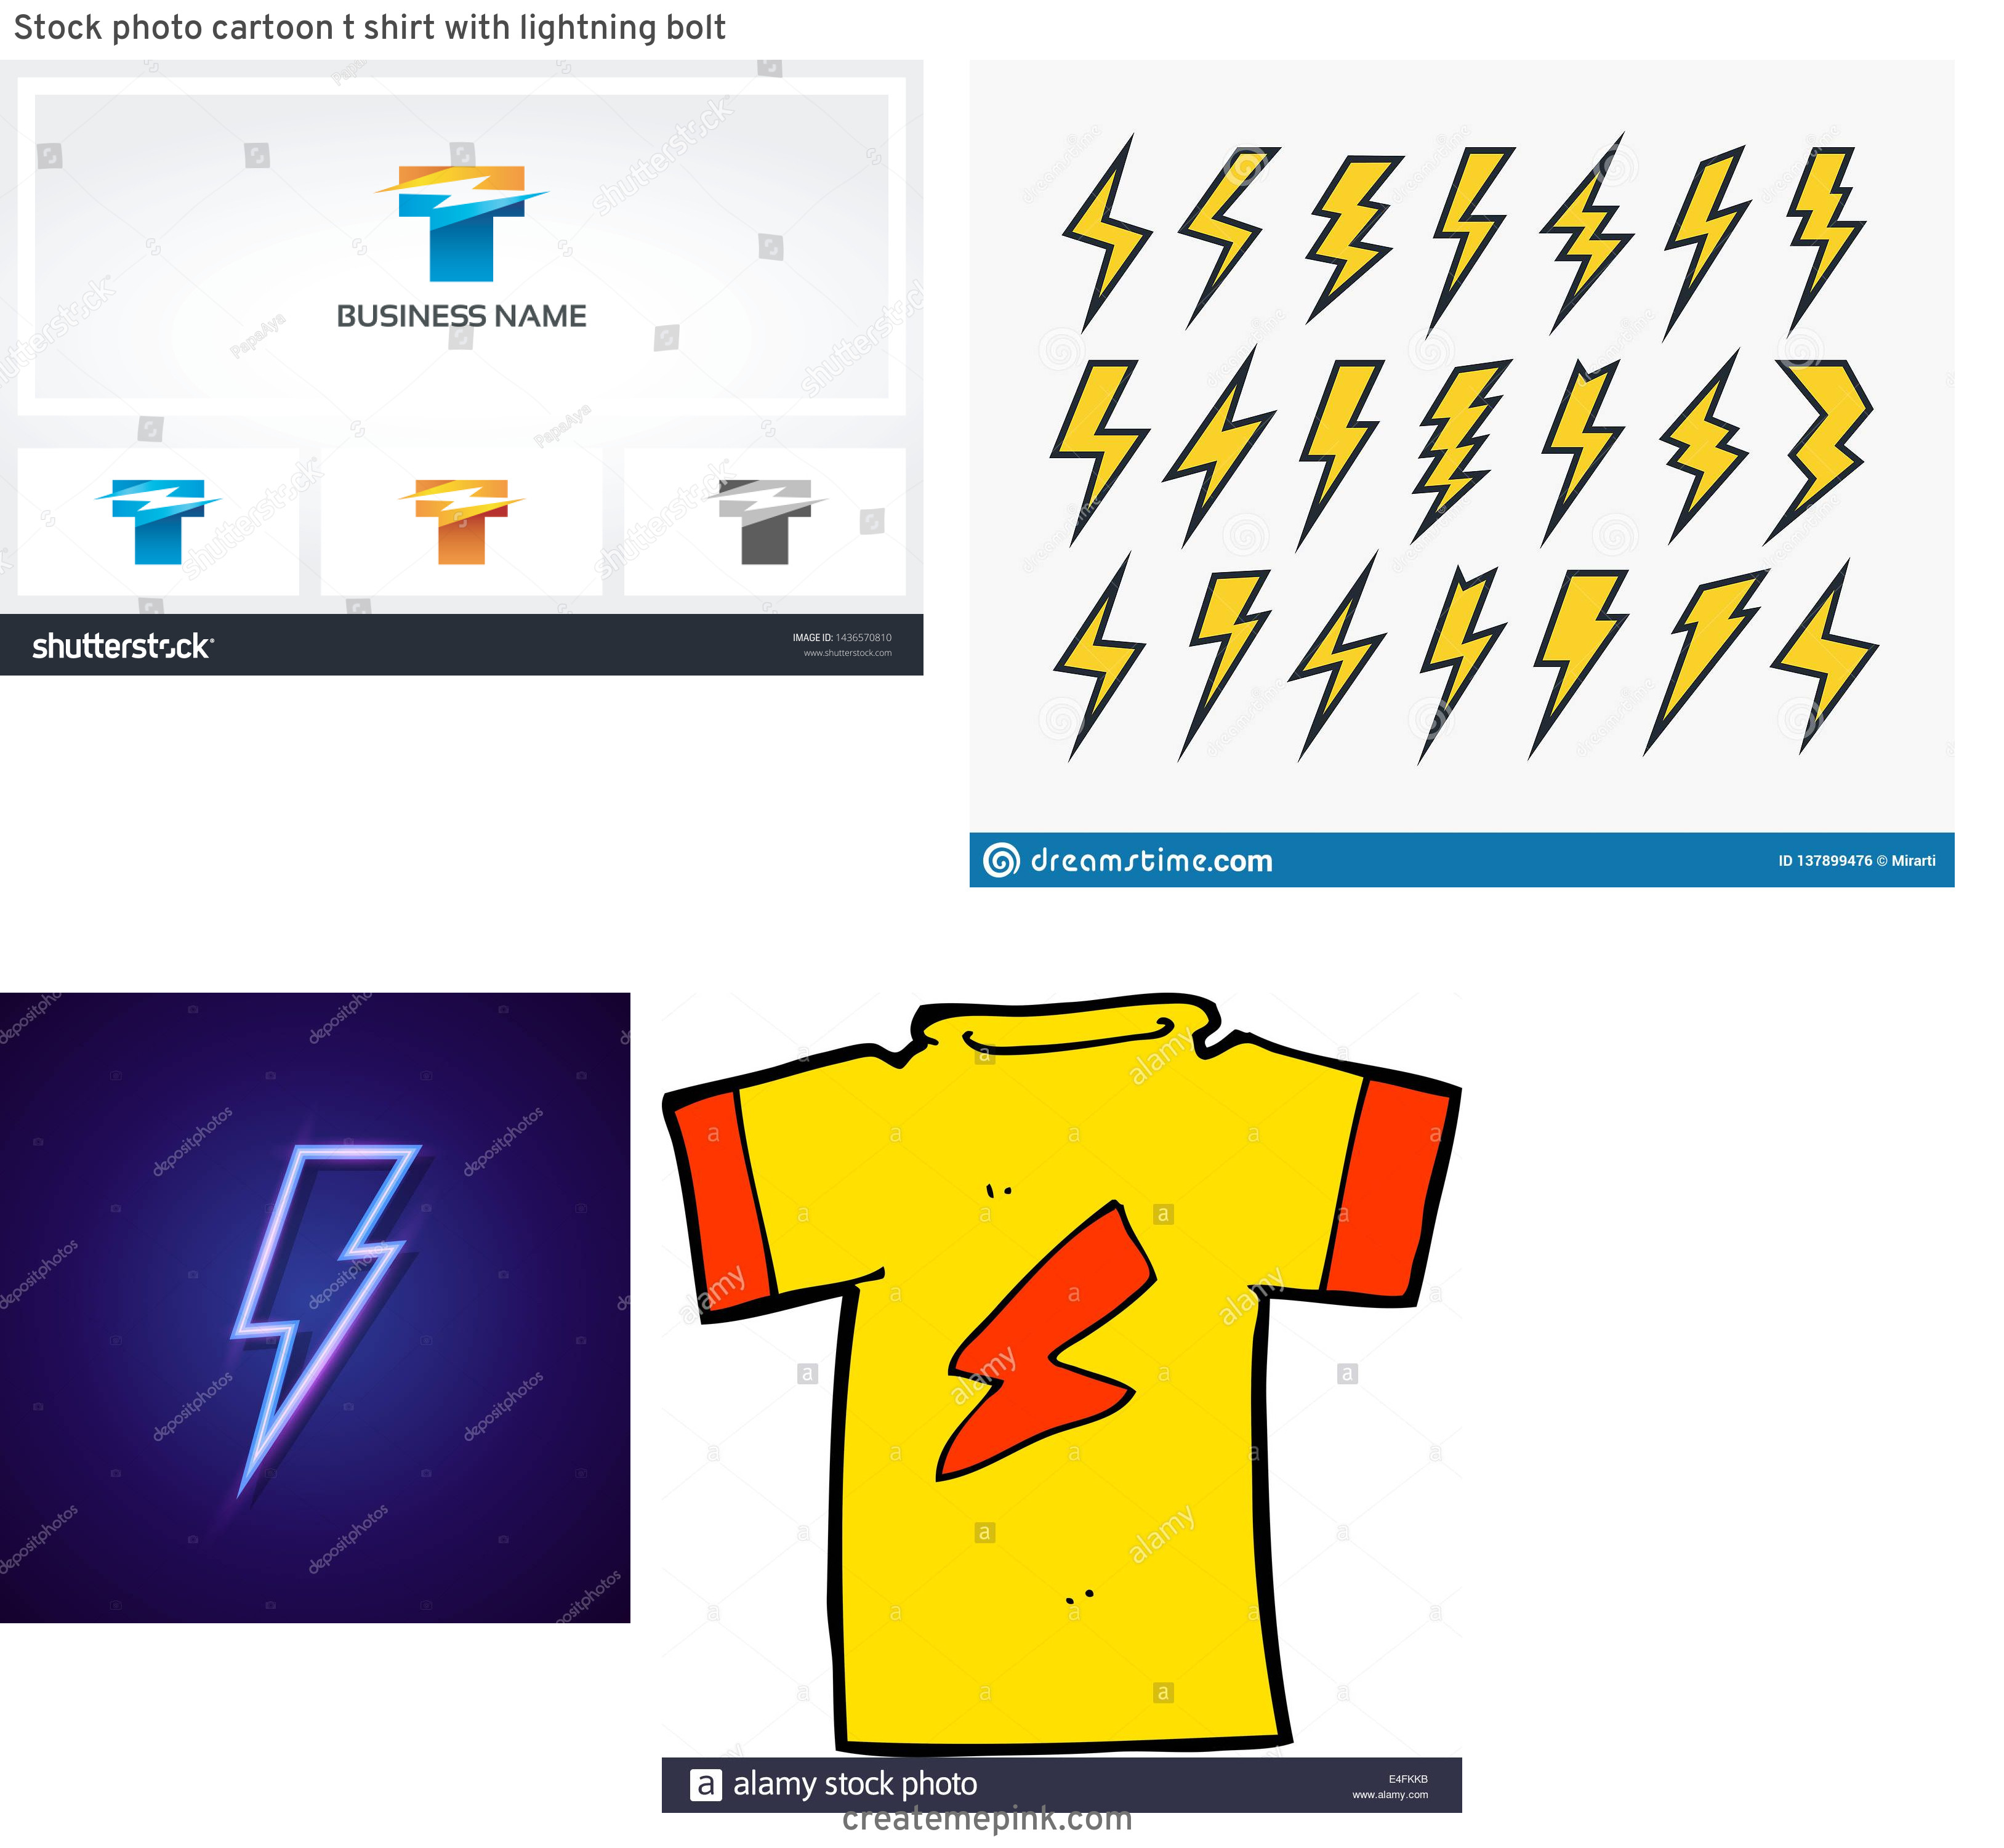 Lightning Vector T: Stock Photo Cartoon T Shirt With Lightning Bolt